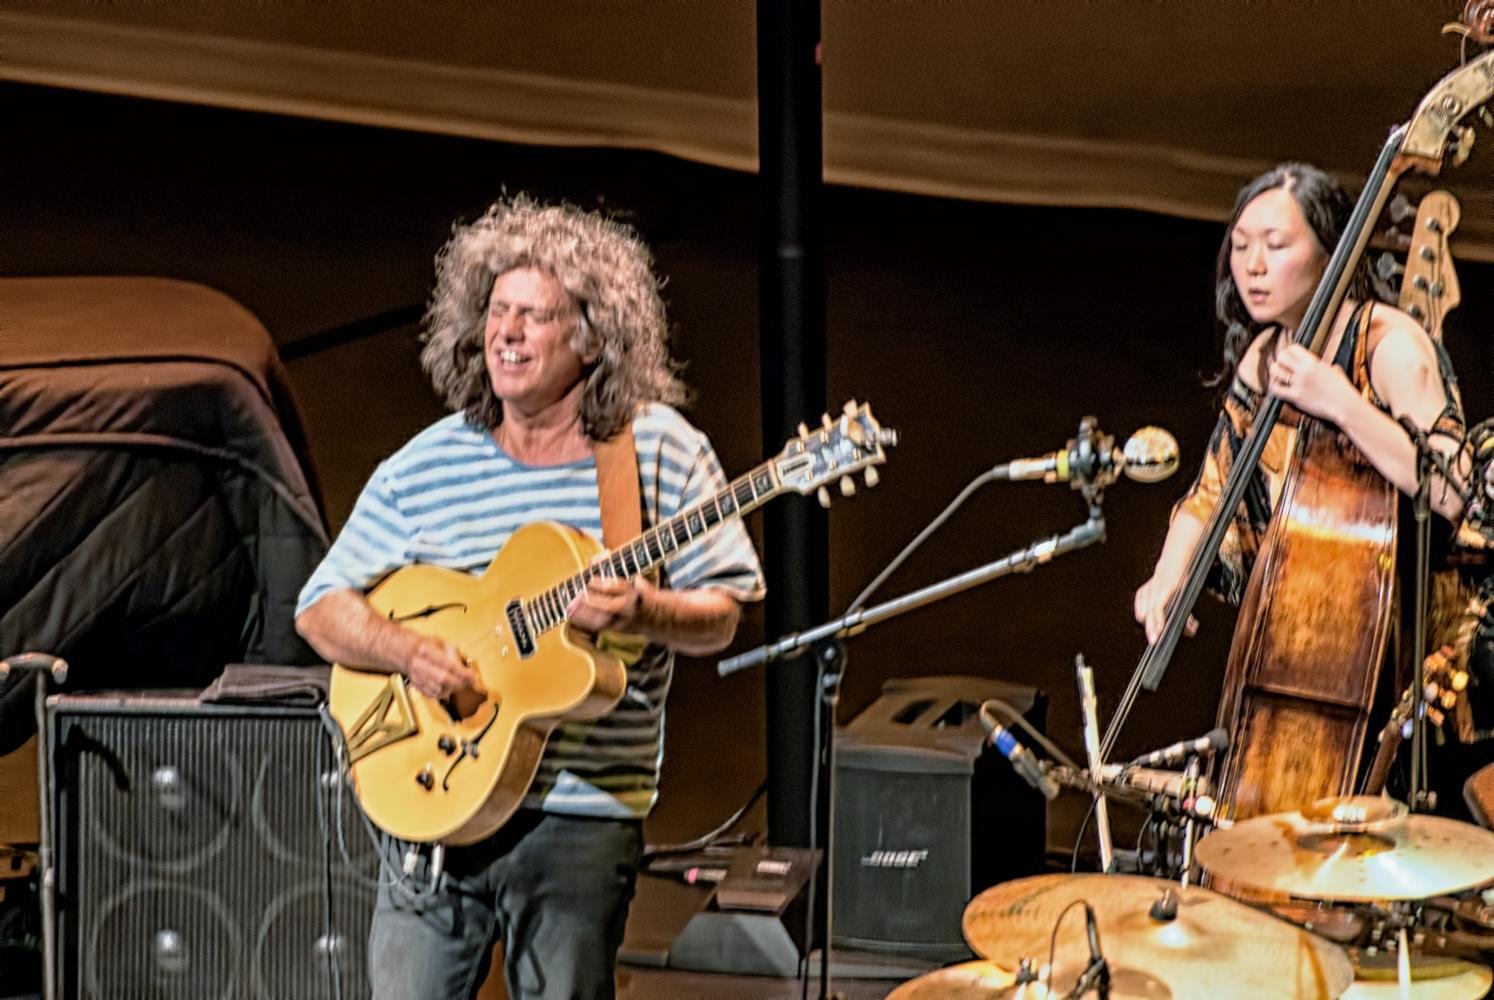 Pat Metheny and Linda Oh with Quartet at the Scottsdale Center for the Performing Arts, Scottsdale, AZ